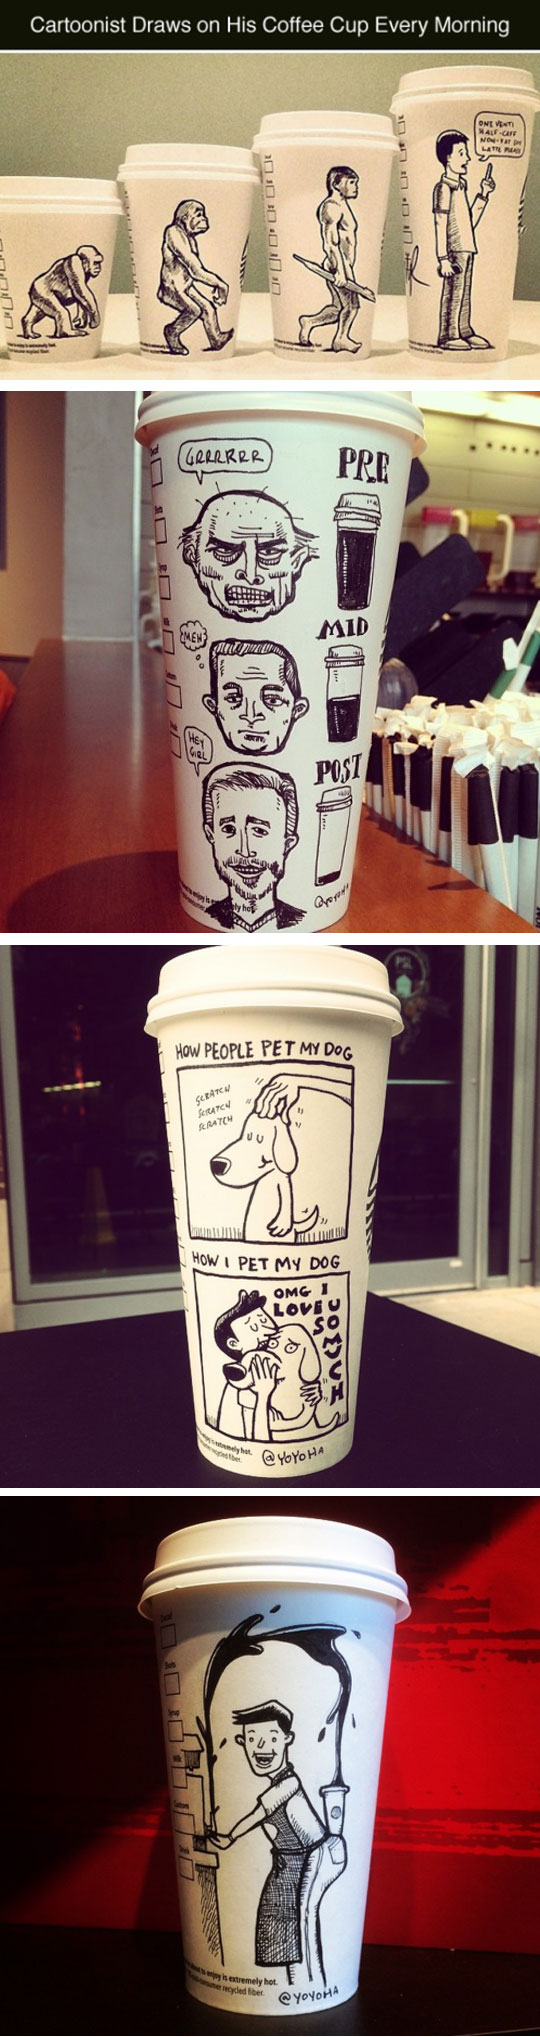 cool-cartoonist-drawing-coffee-cup